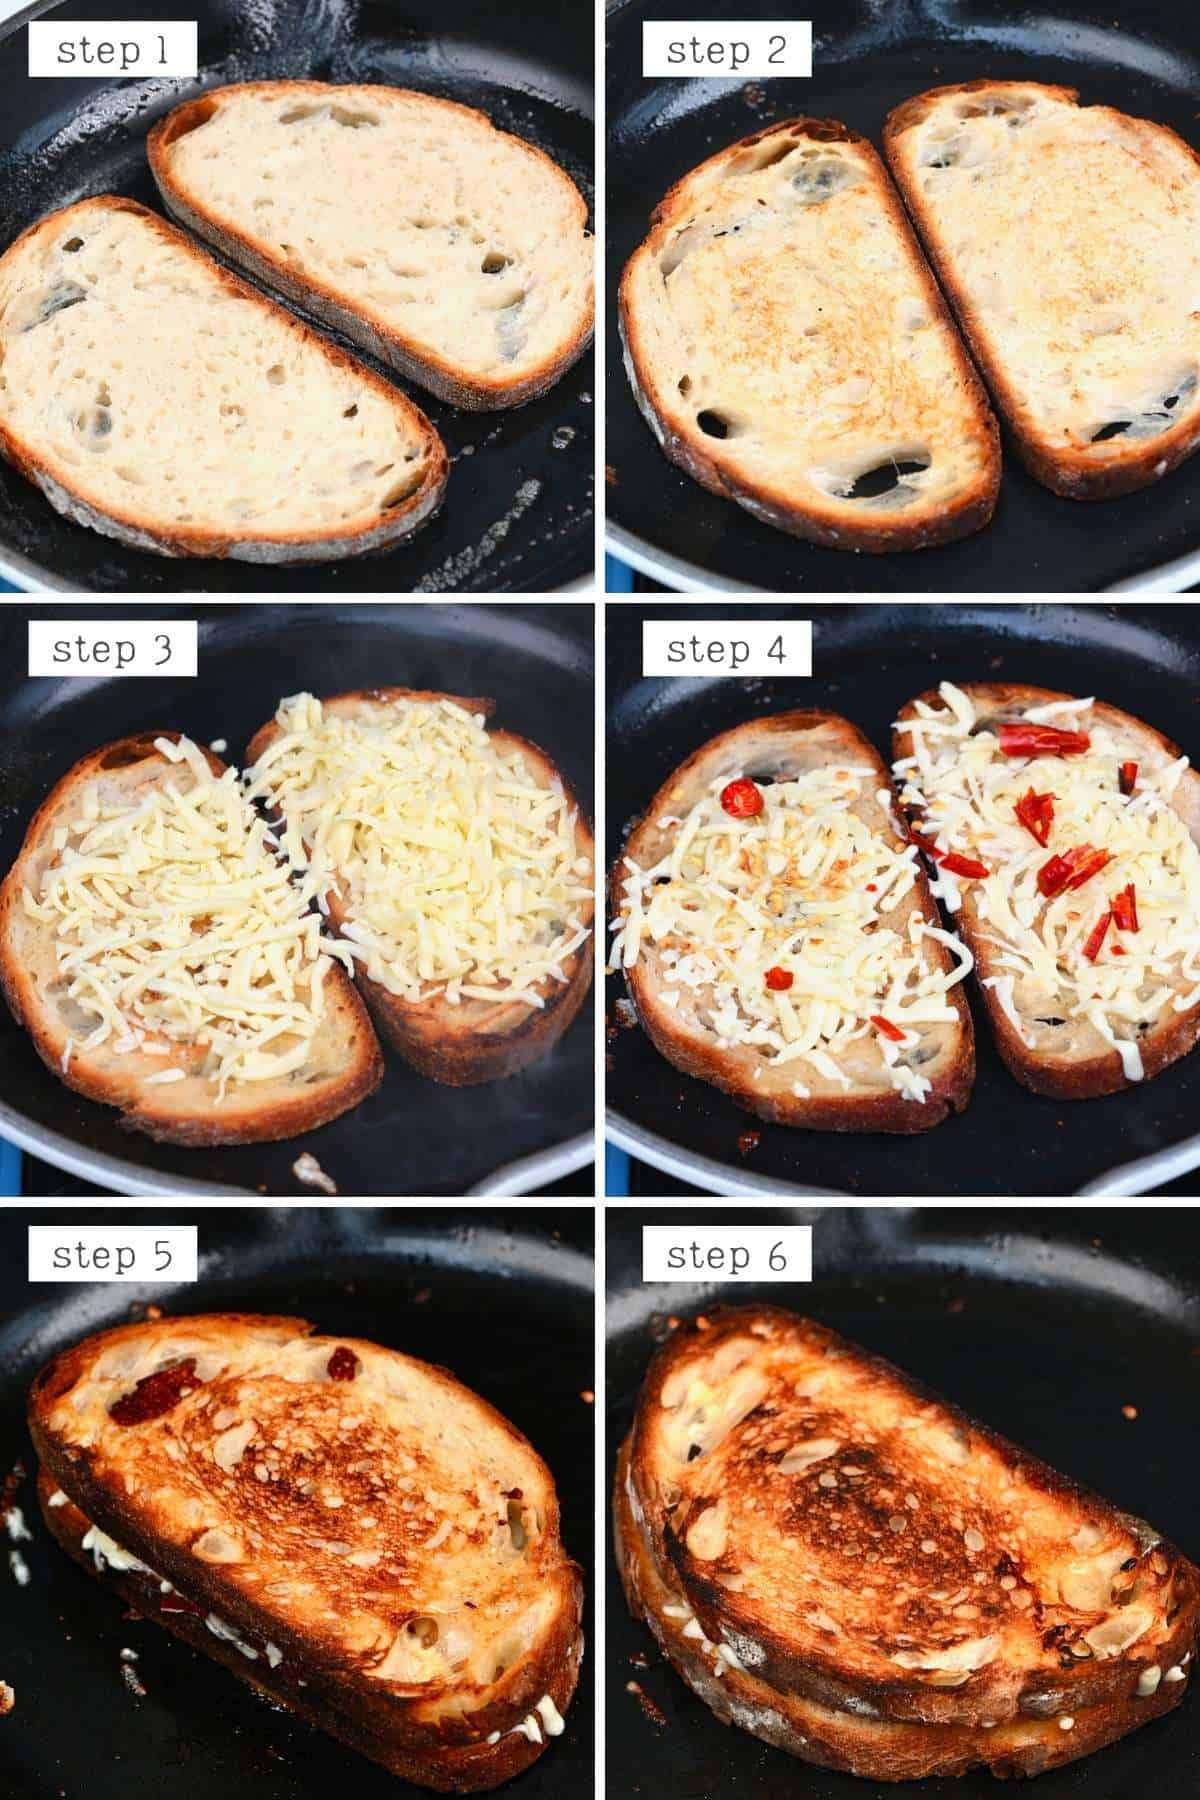 Steps for making cheese toastie